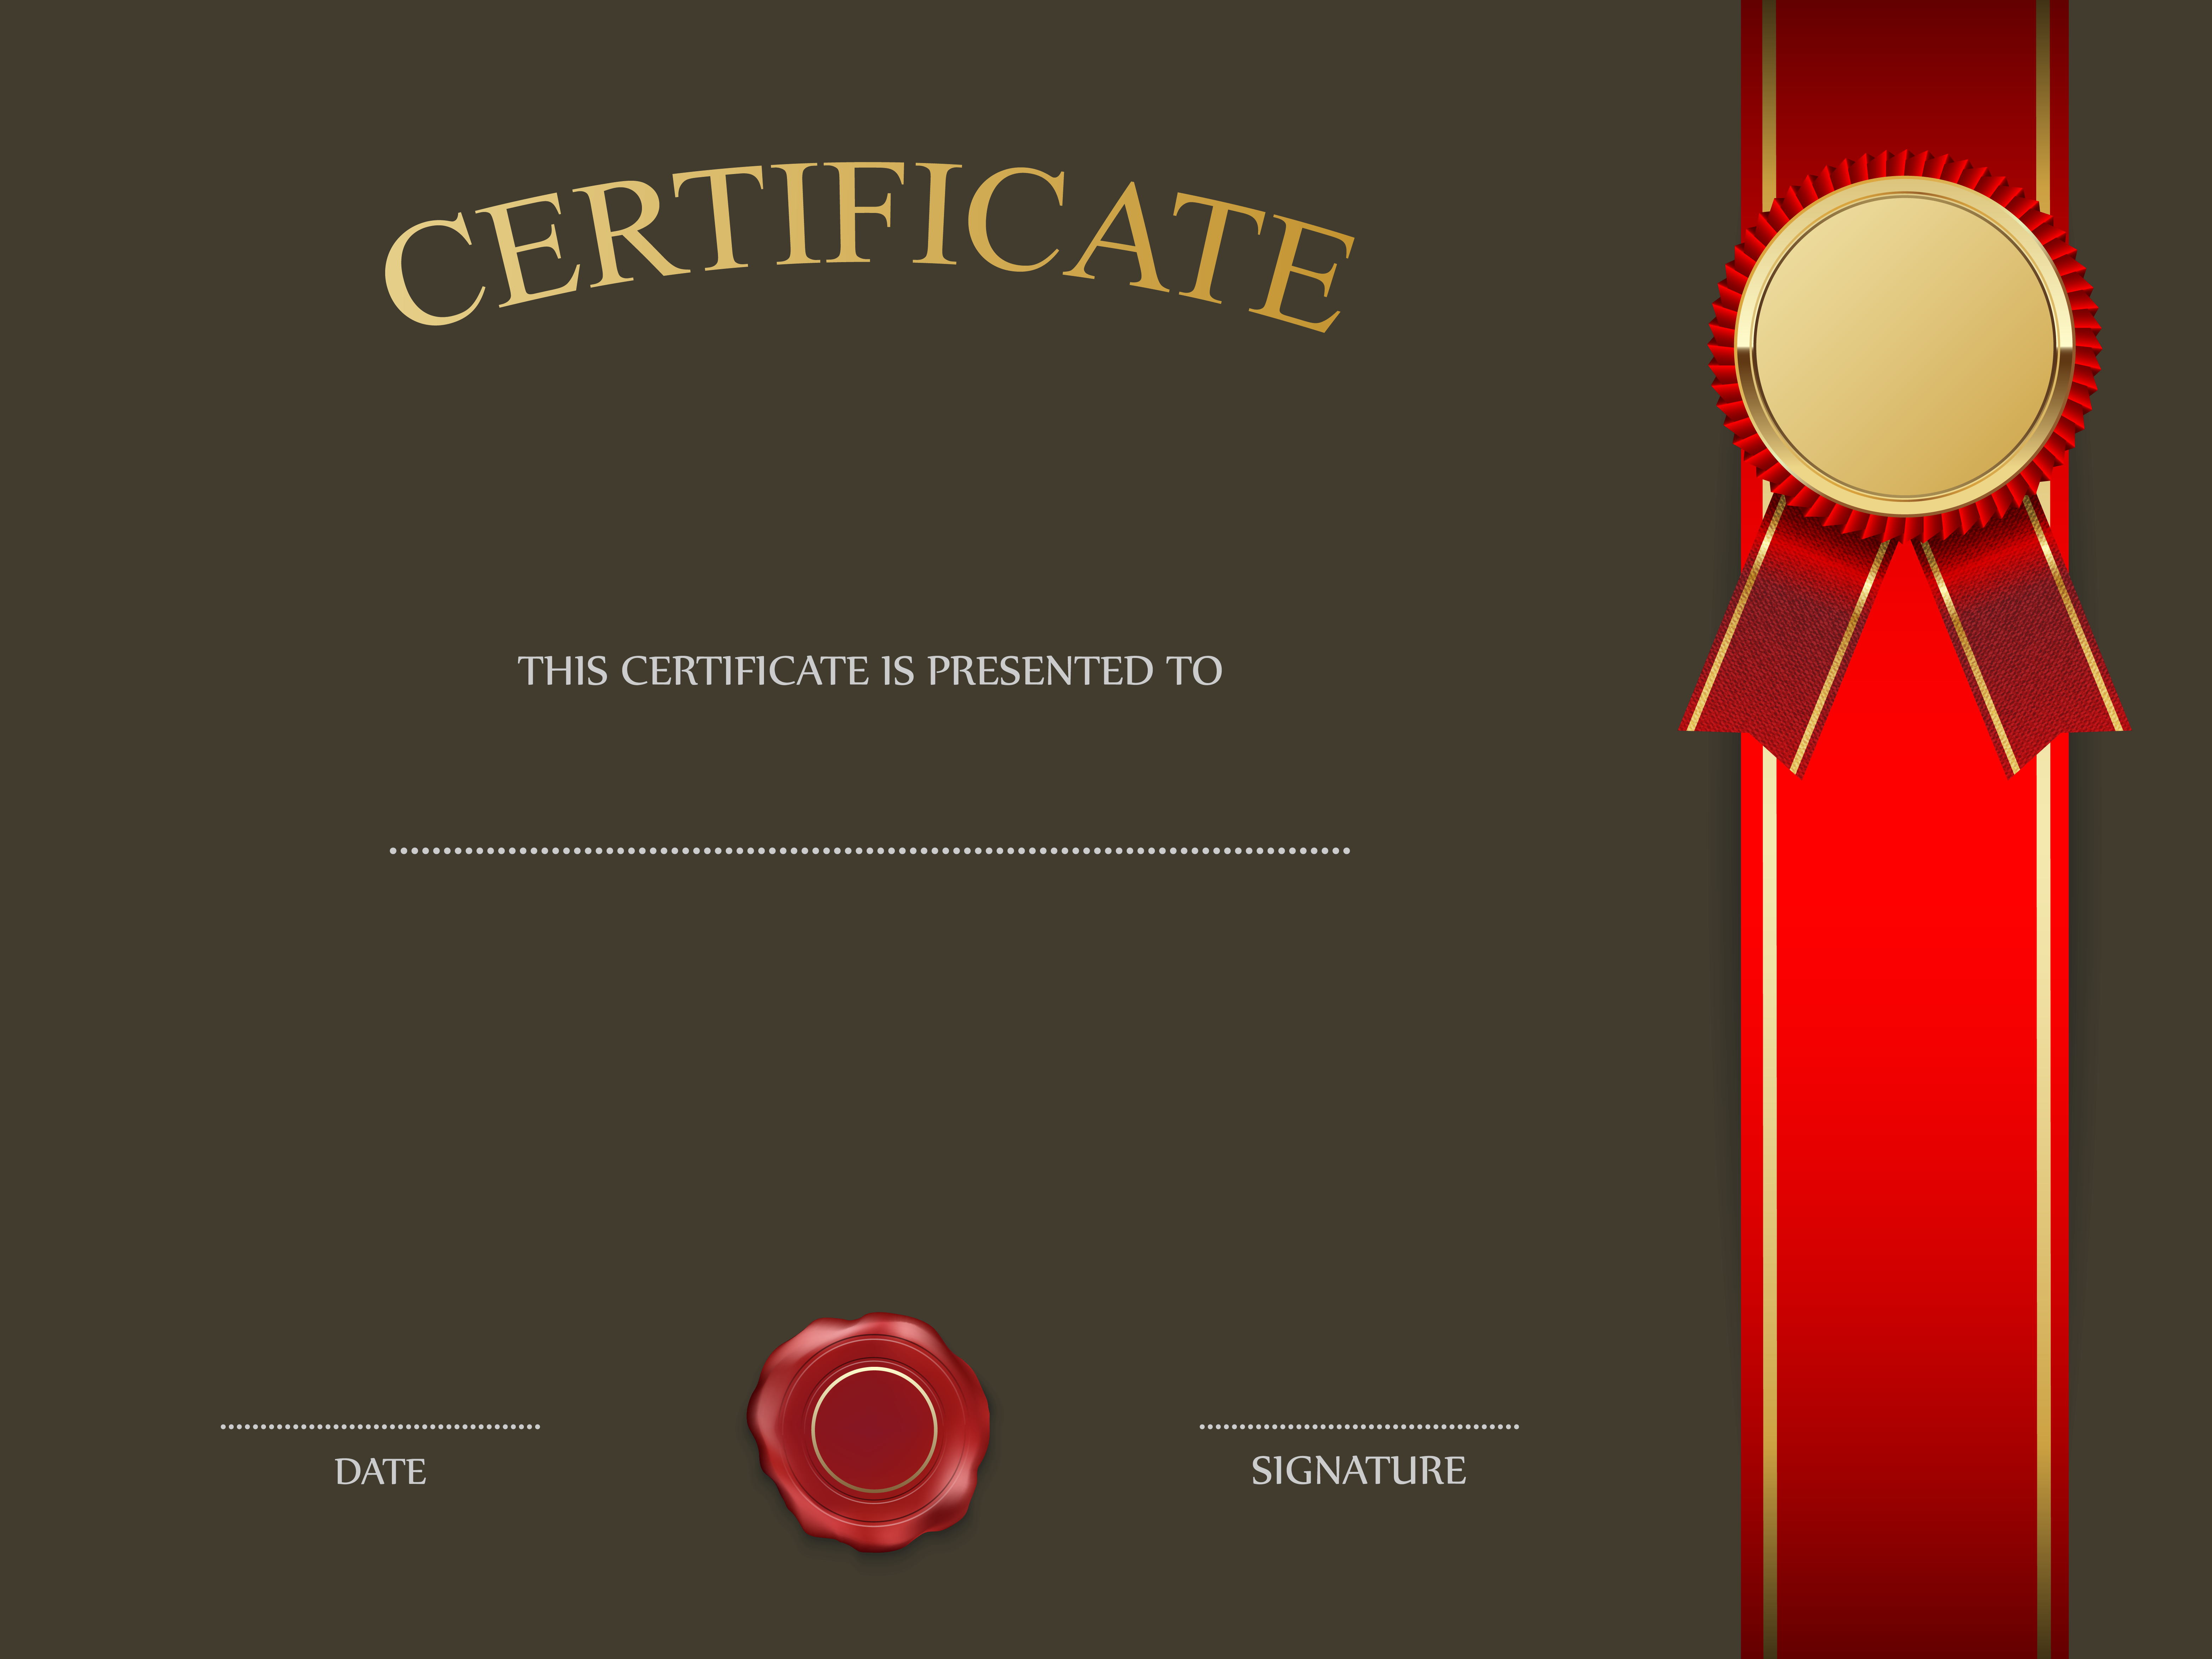 Templates  clipart cert View Image Yopriceville Certificate size